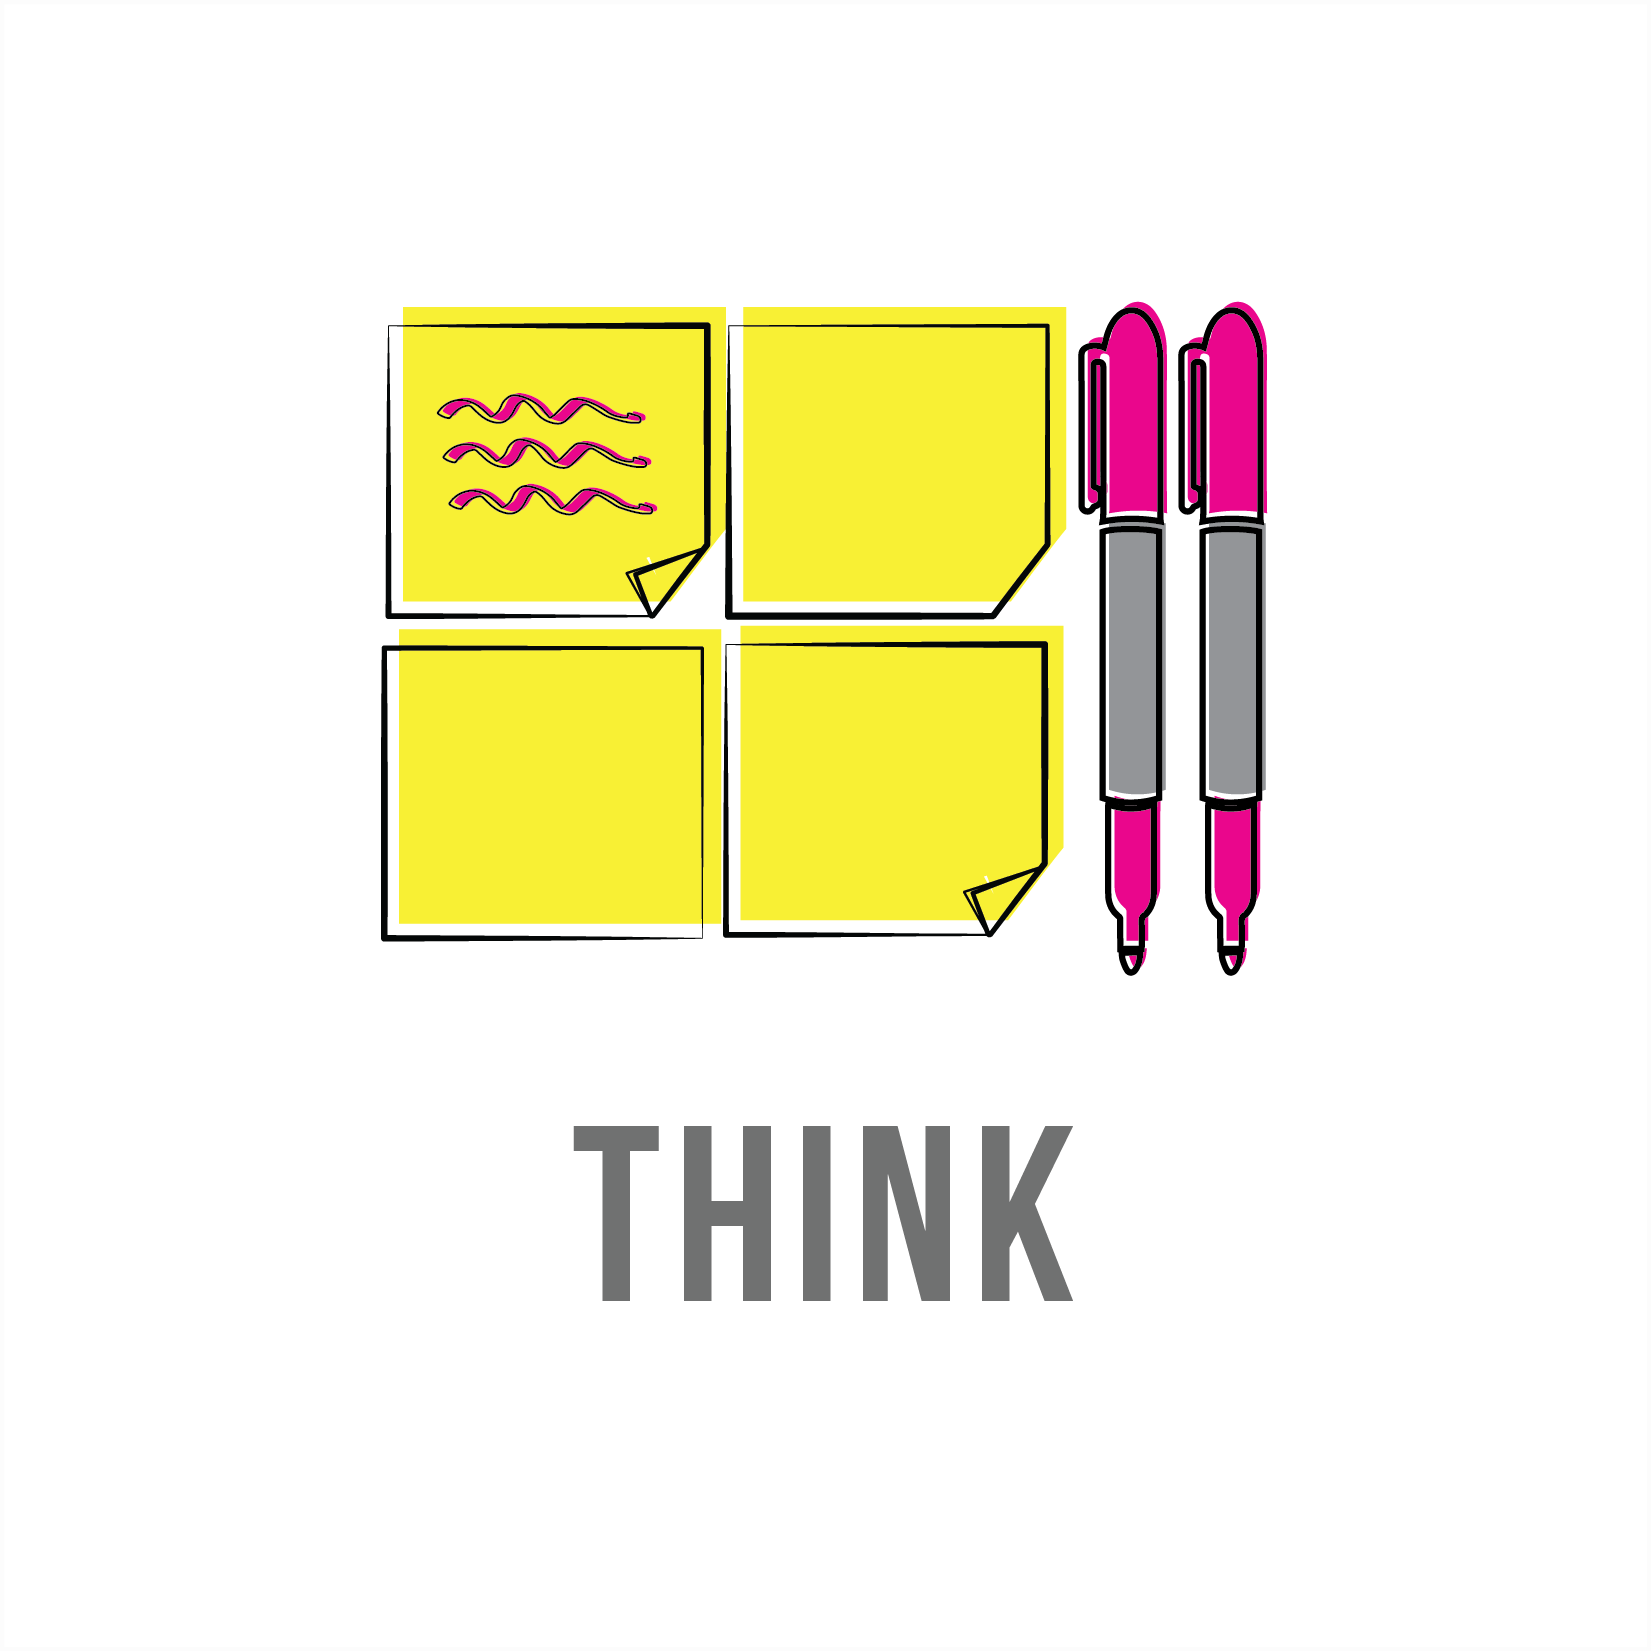 Design Icons_Think_4.png